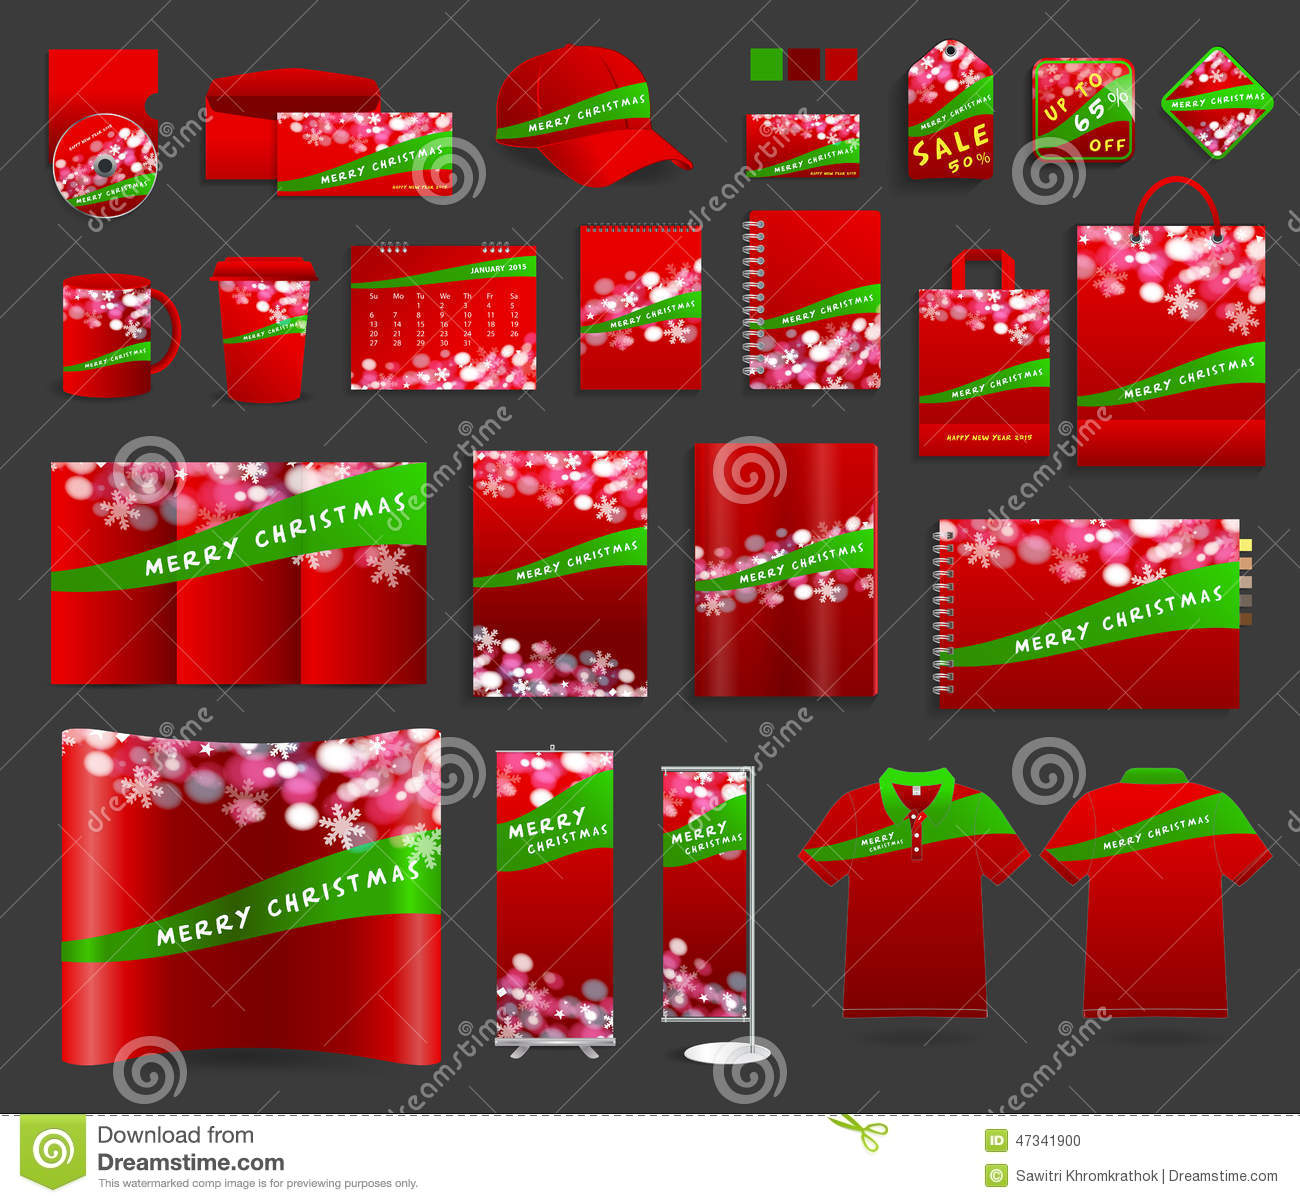 Vector Corporate Identity Templates With Merry Christmas – Blank Christmas Templates